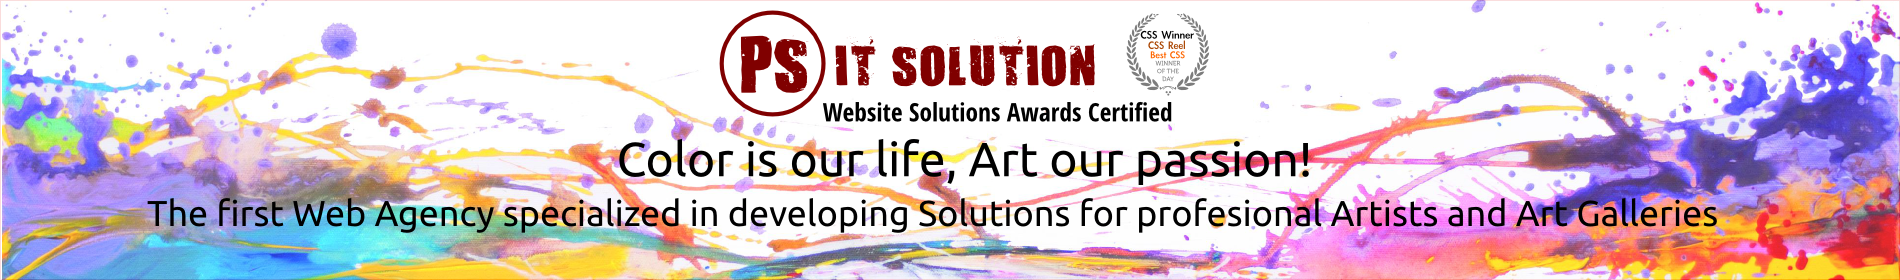 Best Web Agency for Artist's Website specialized in developing solution for Artists and Art Galleries